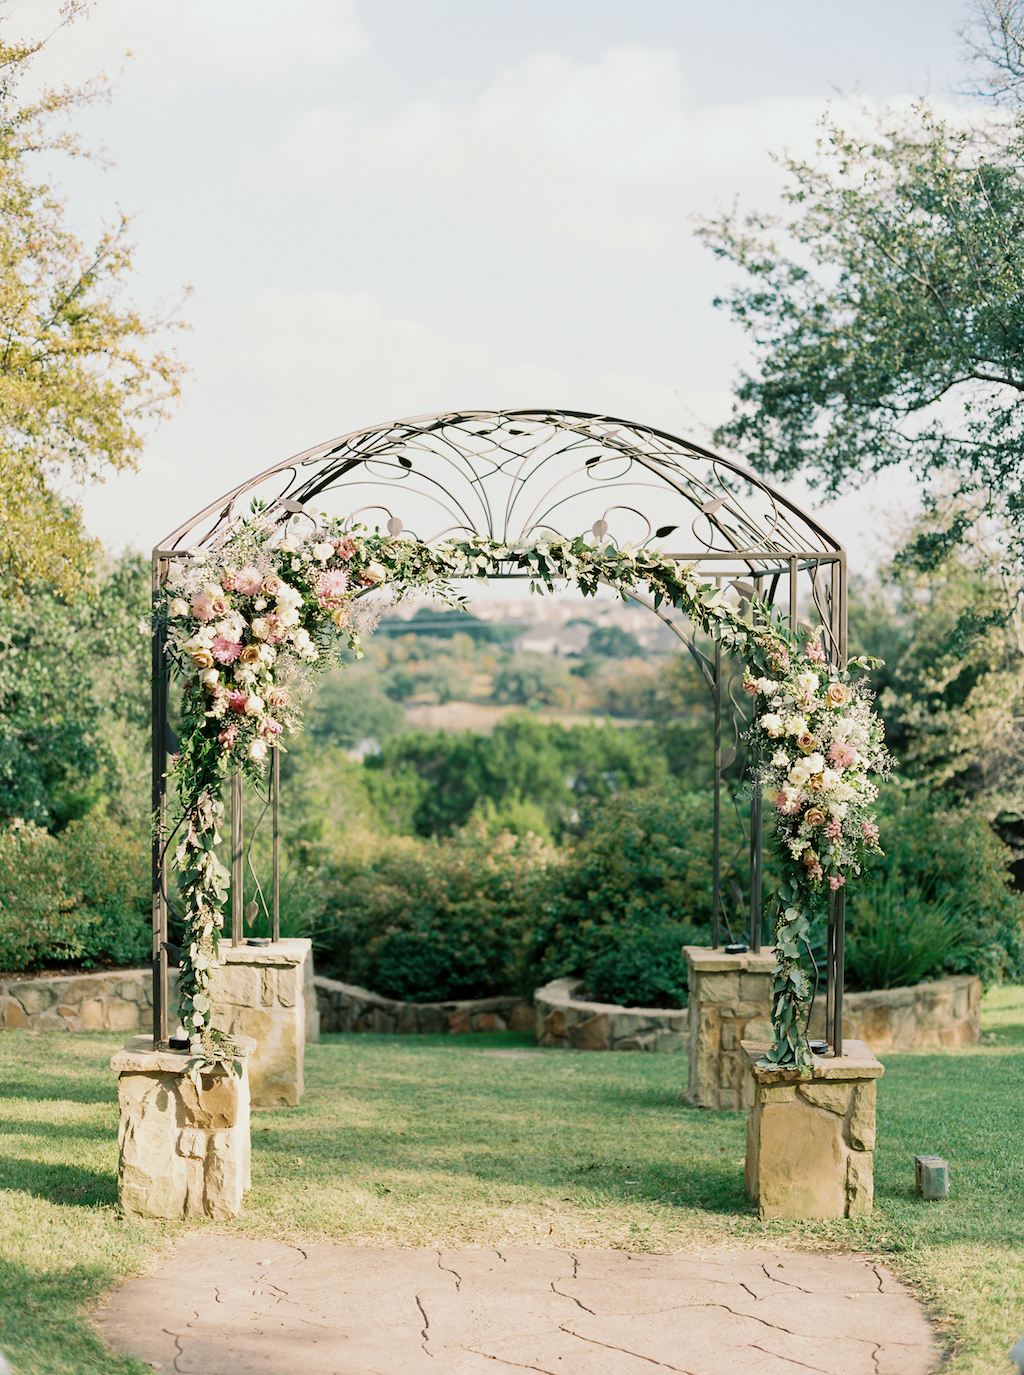 Kindred Oaks, a wedding venue in Georgetown, Texas, features a unique iron arbor at their outdoor ceremony site.